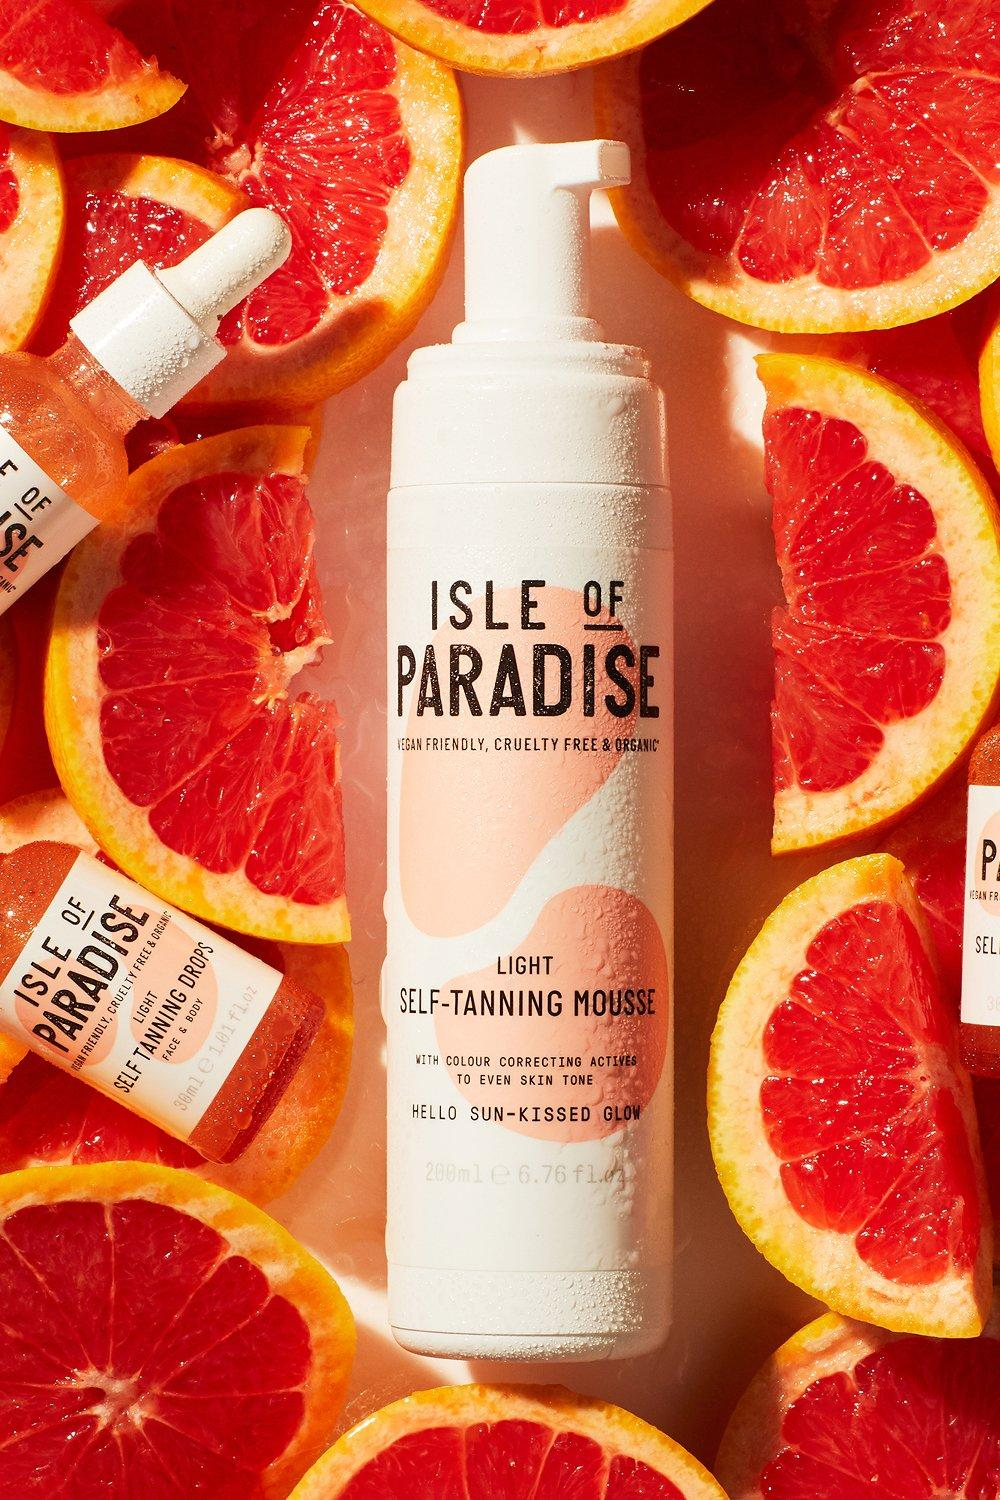 Isle of Paradise Womens Isle Of Paradise Self Tanning Mousse Light - Brown - One Size, Brown